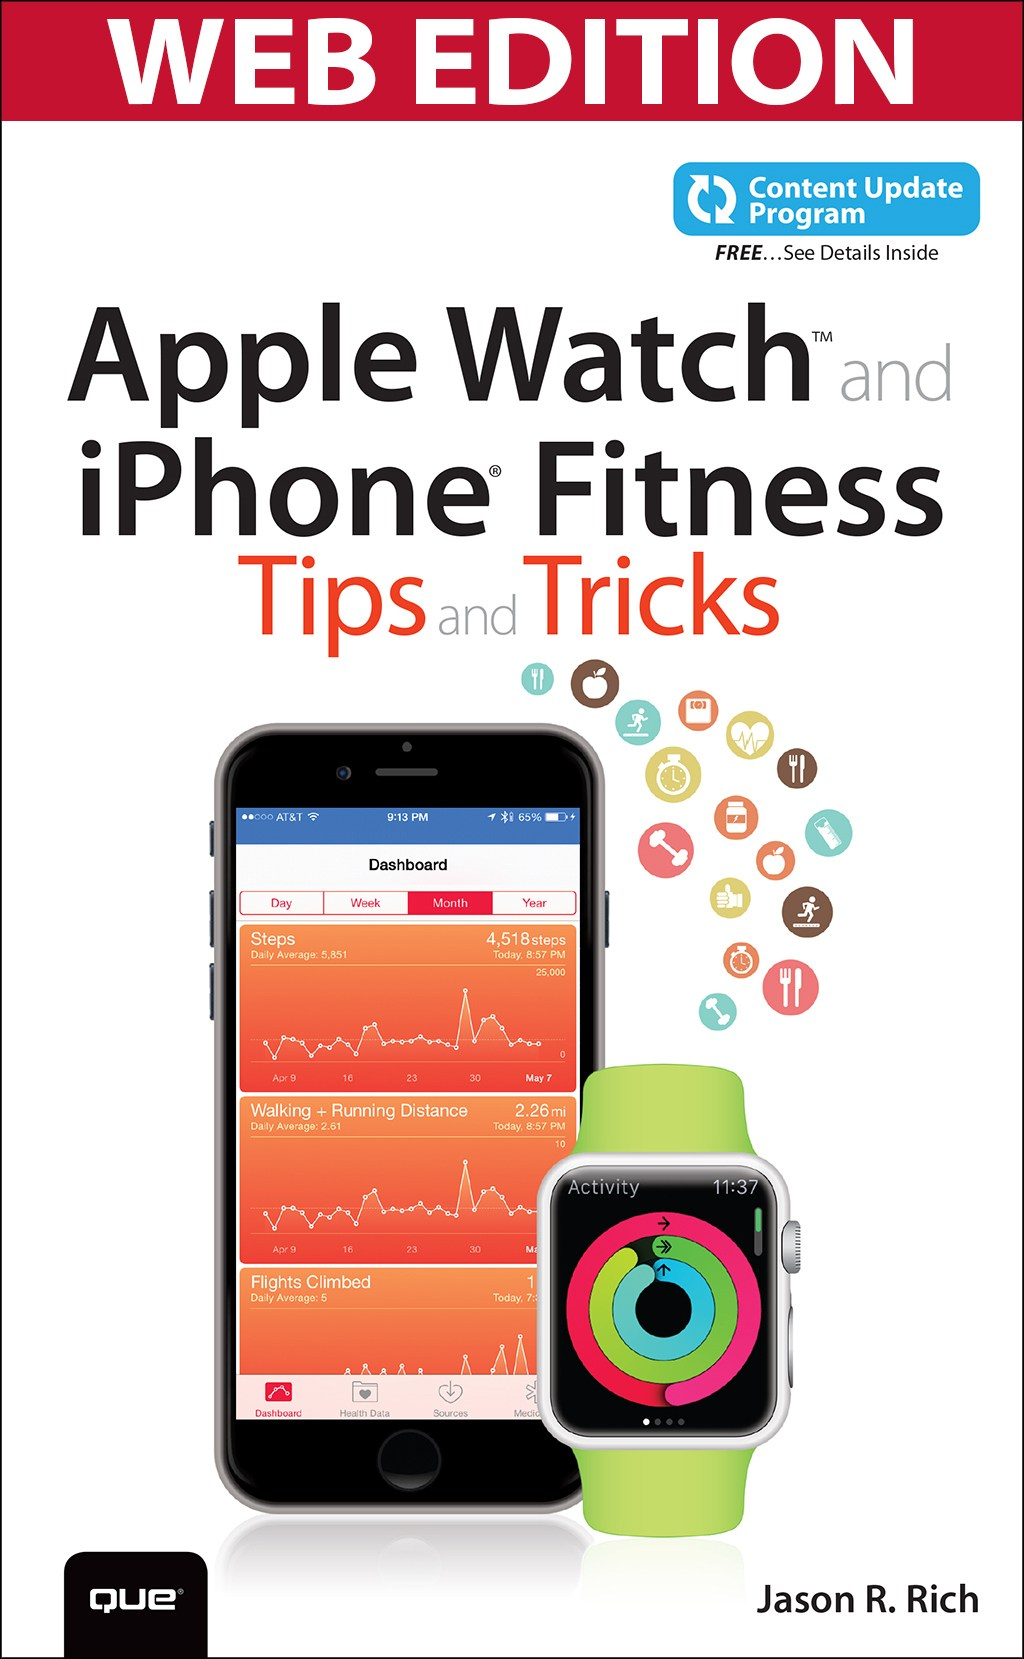 Apple Watch and iPhone Fitness Tips and Tricks (Web Edition and Content Update Program)